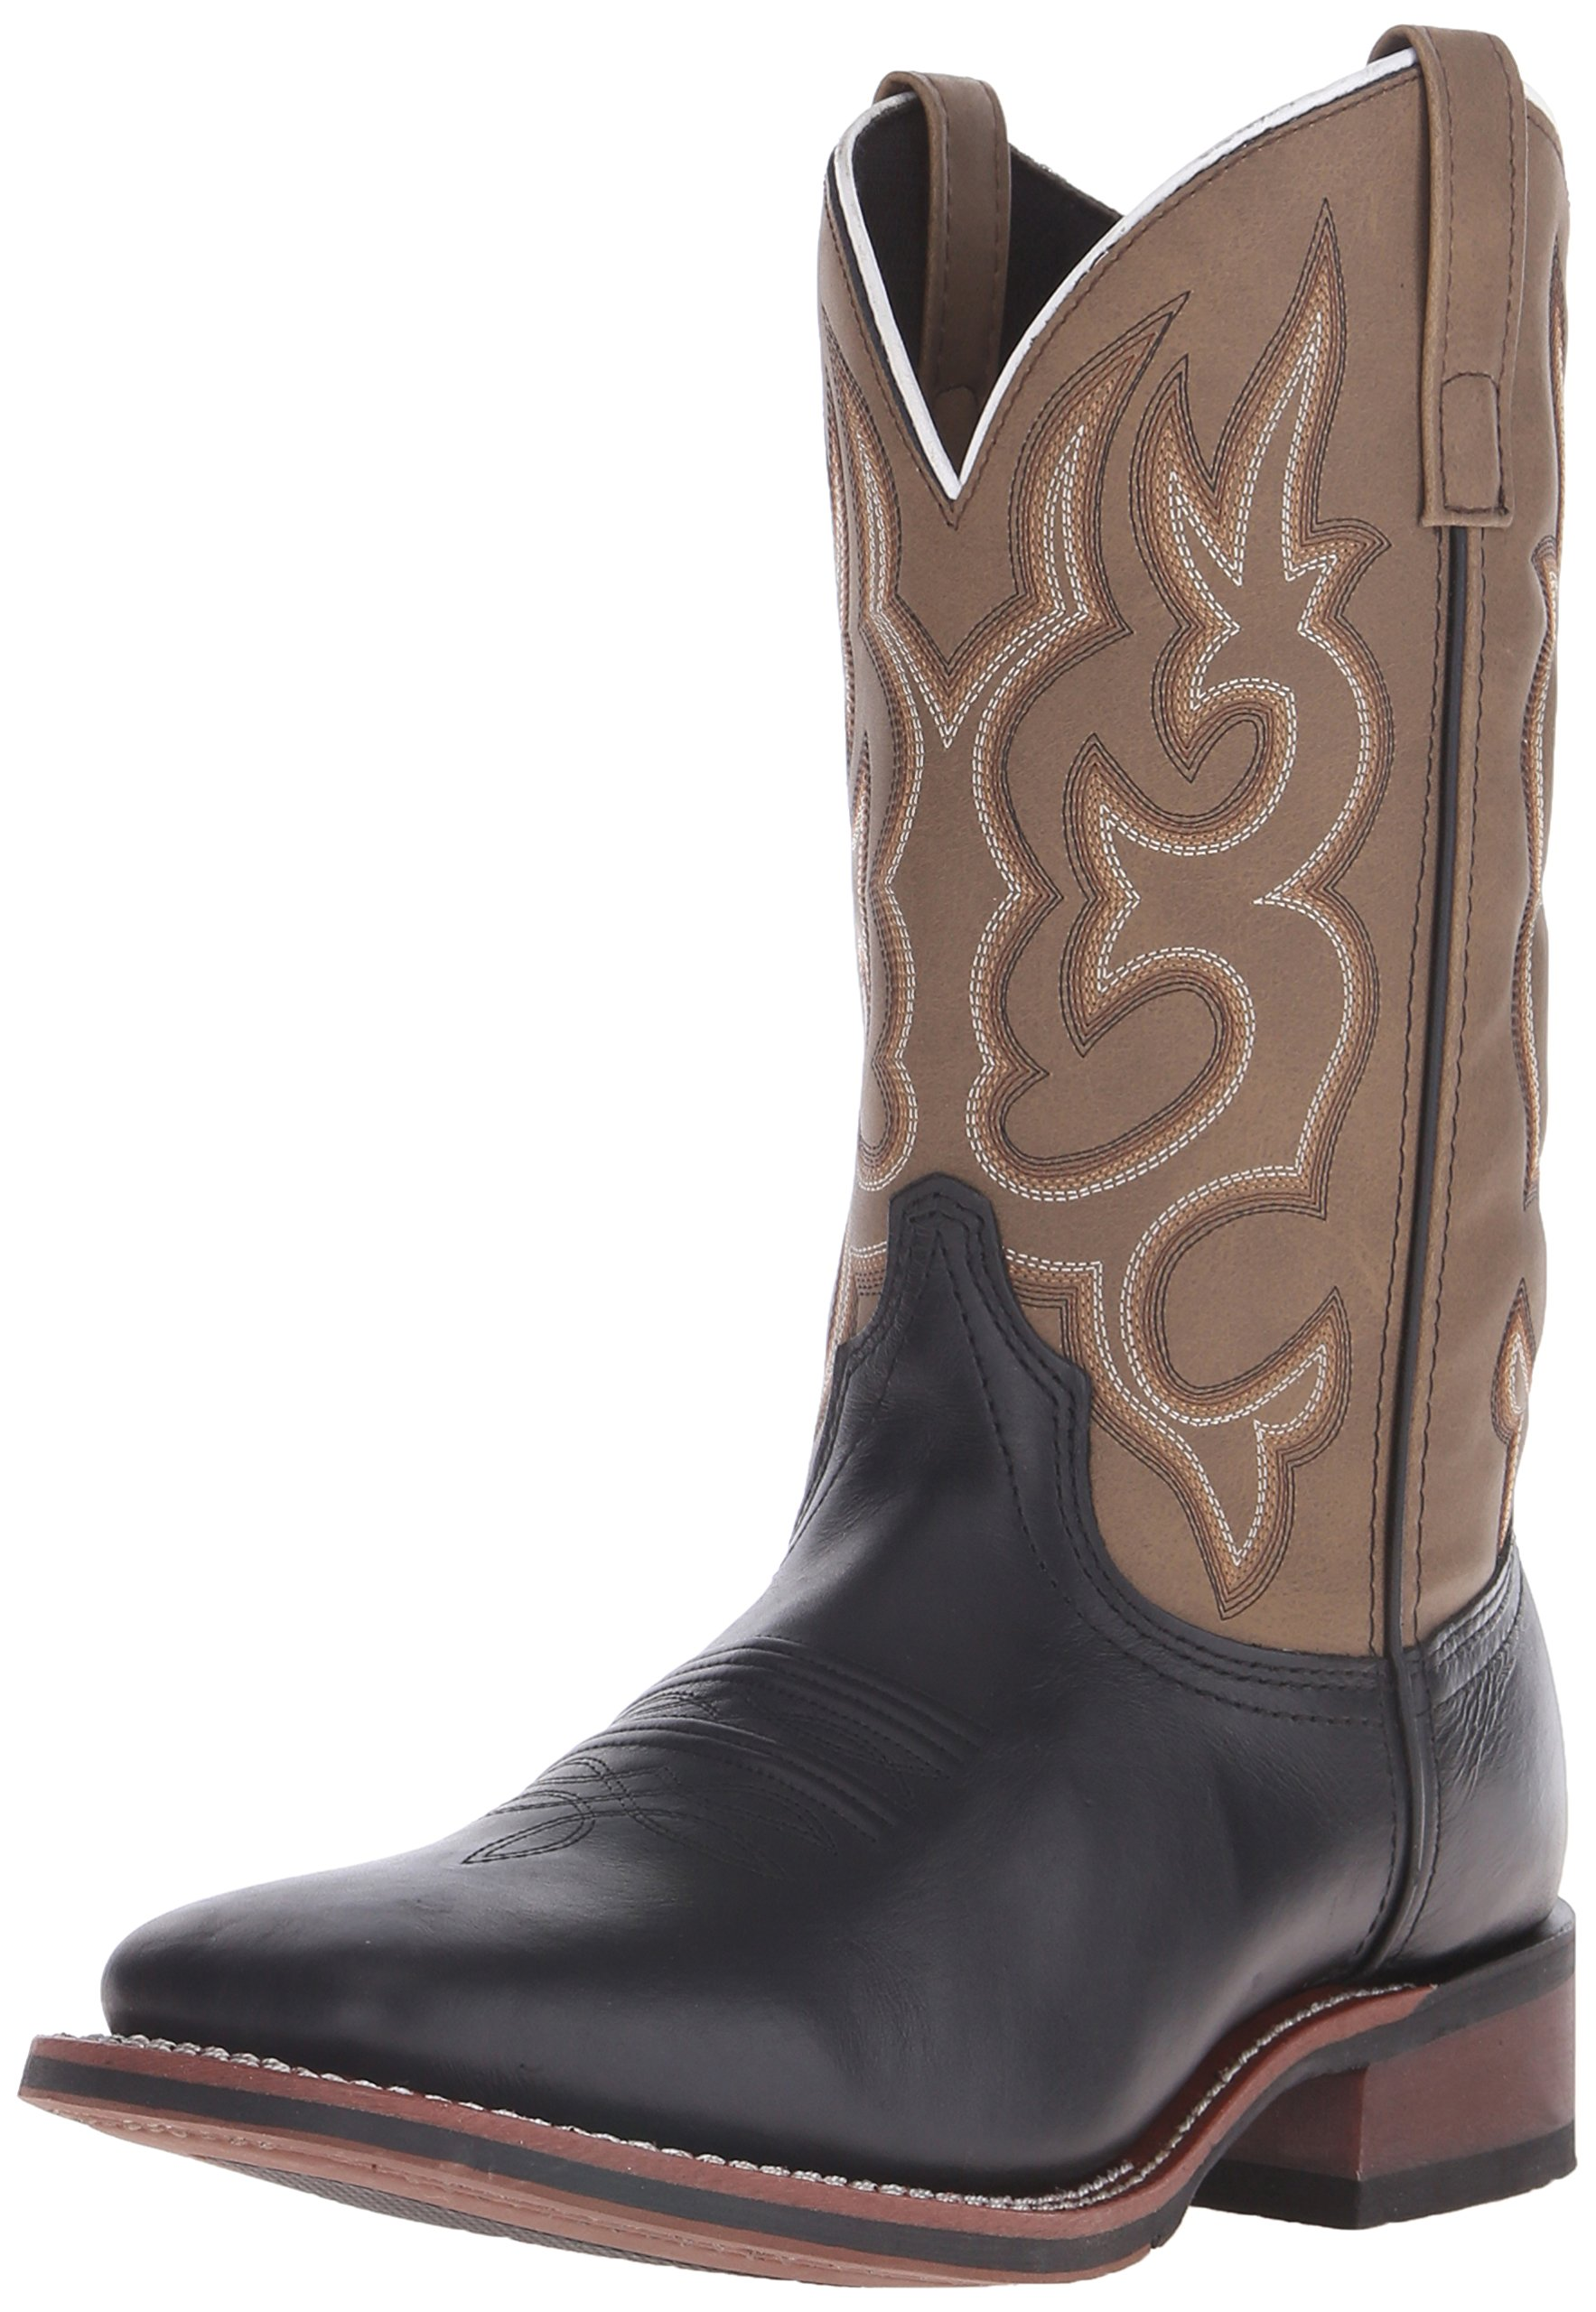 Laredo Men's Lodi Western Boot,Black/Sand,10.5 D US